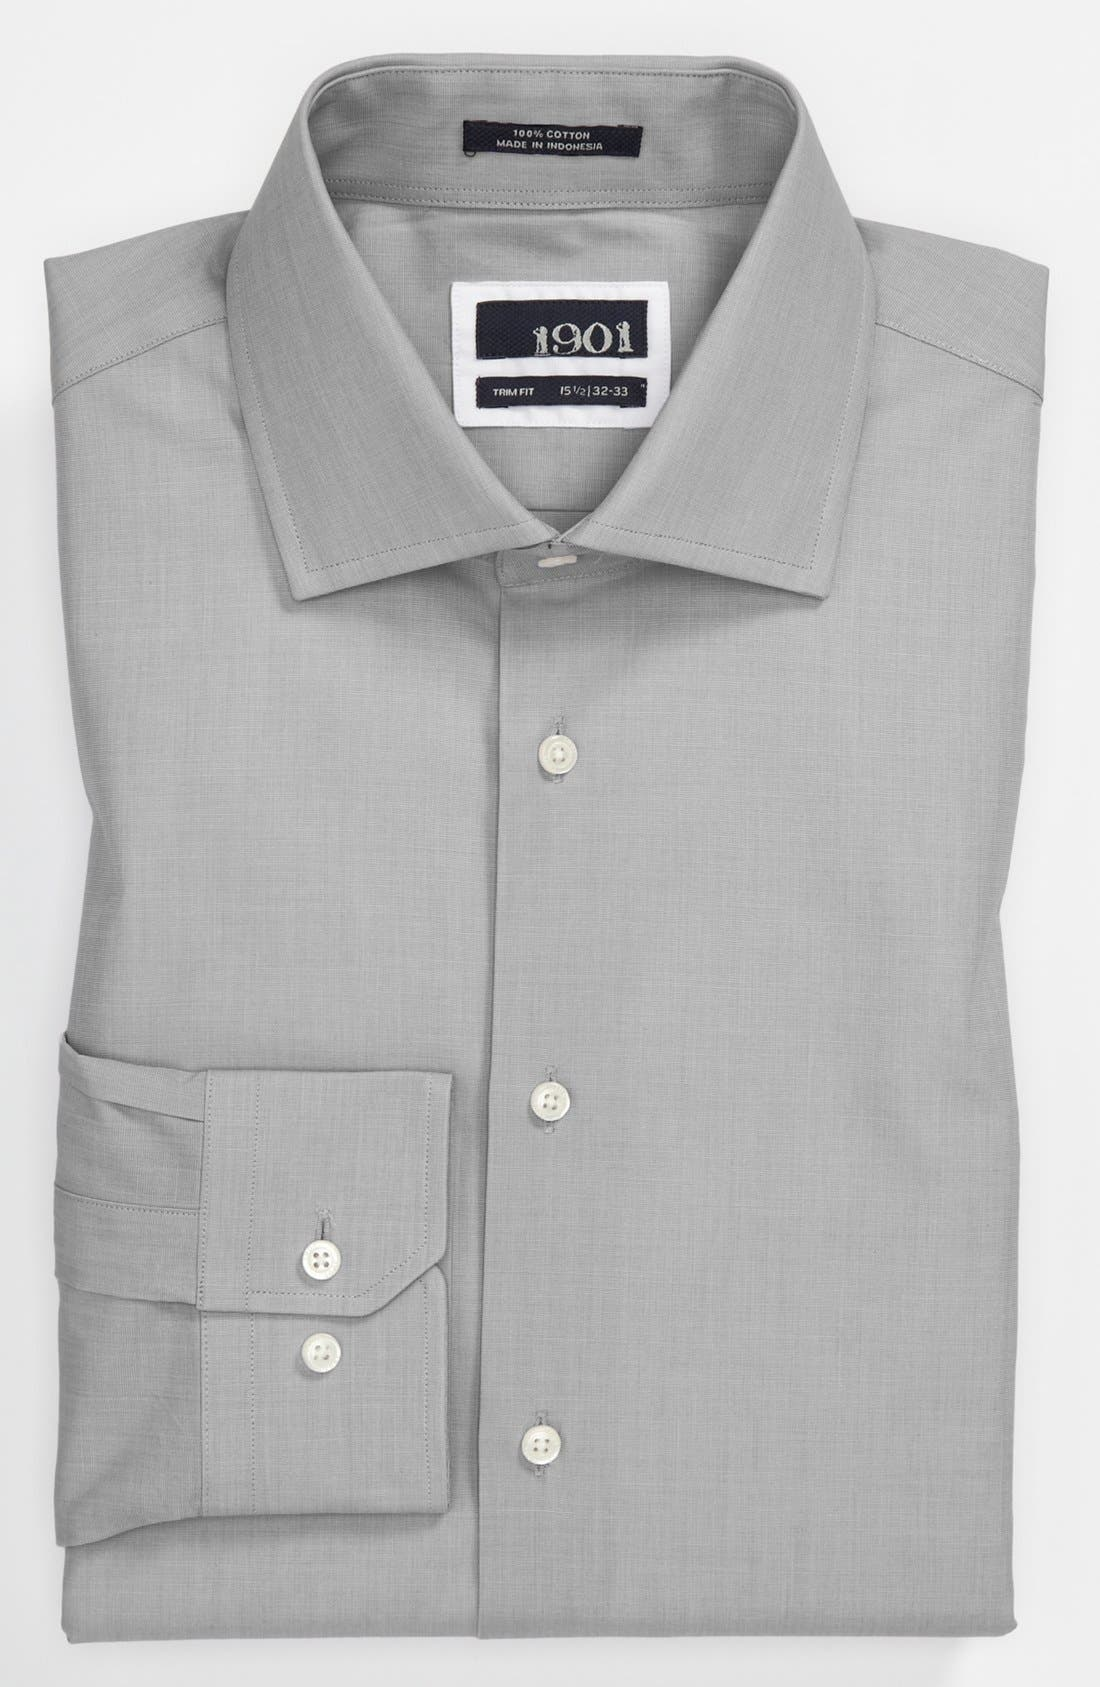 1901 Dress Shirt & Tie, Main, color, 020